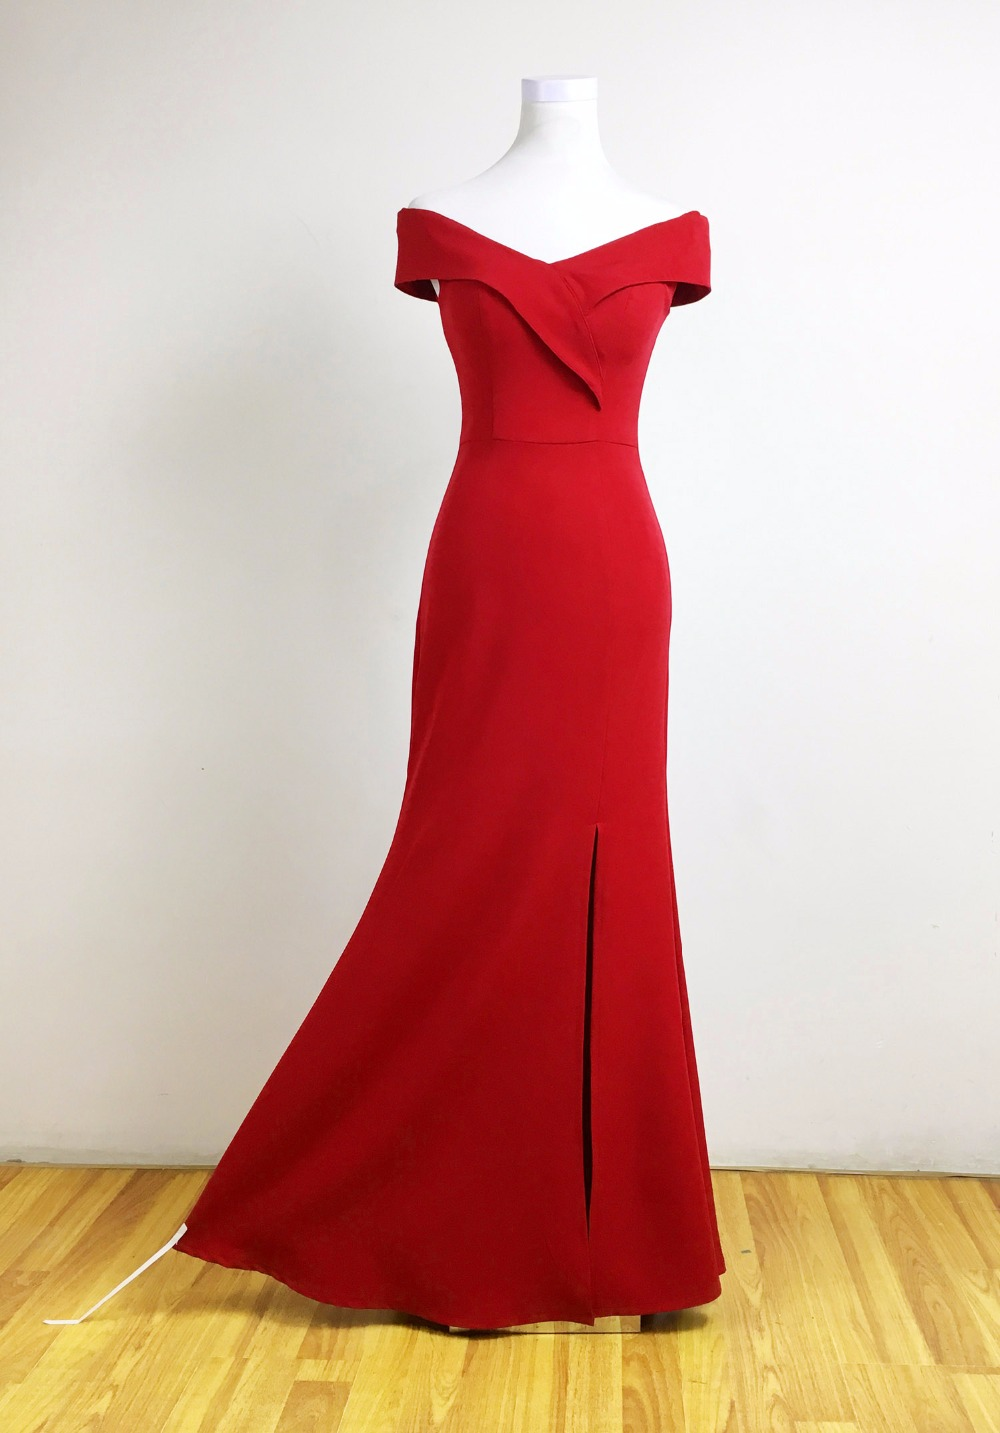 Mermaid Designer Evening Gowns Side Split Red Prom Dress Sexy Long ... 3d6870c6aa3f